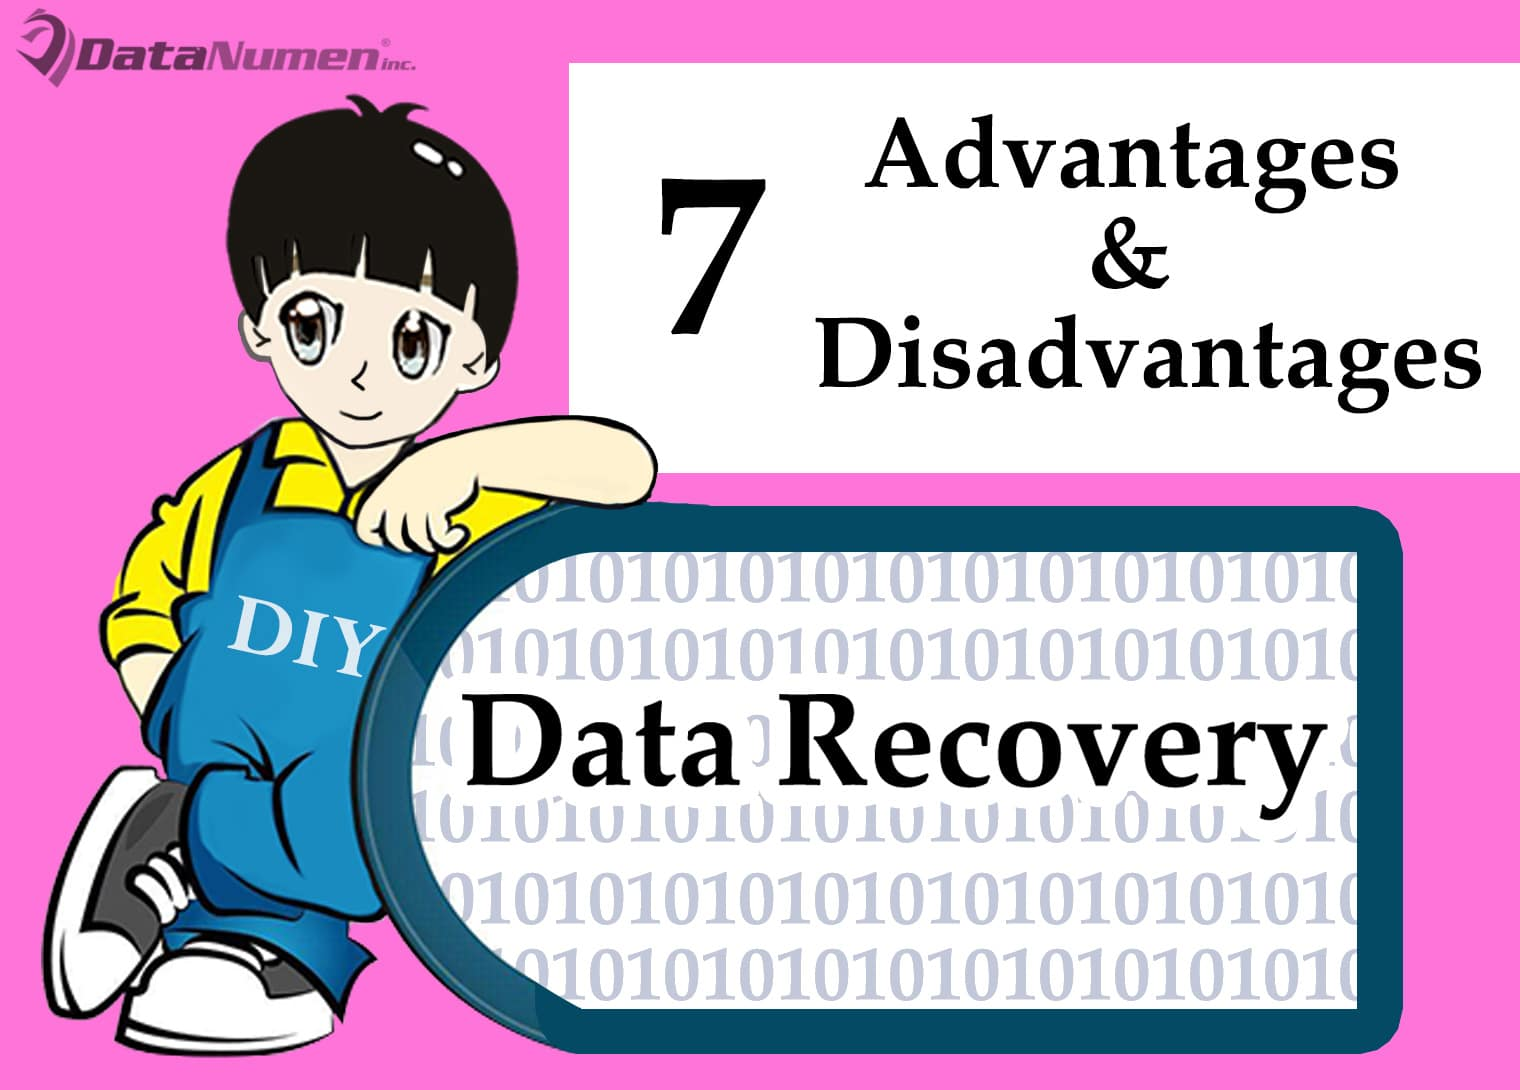 7 Advantages & Disadvantages of DIY Data Recovery